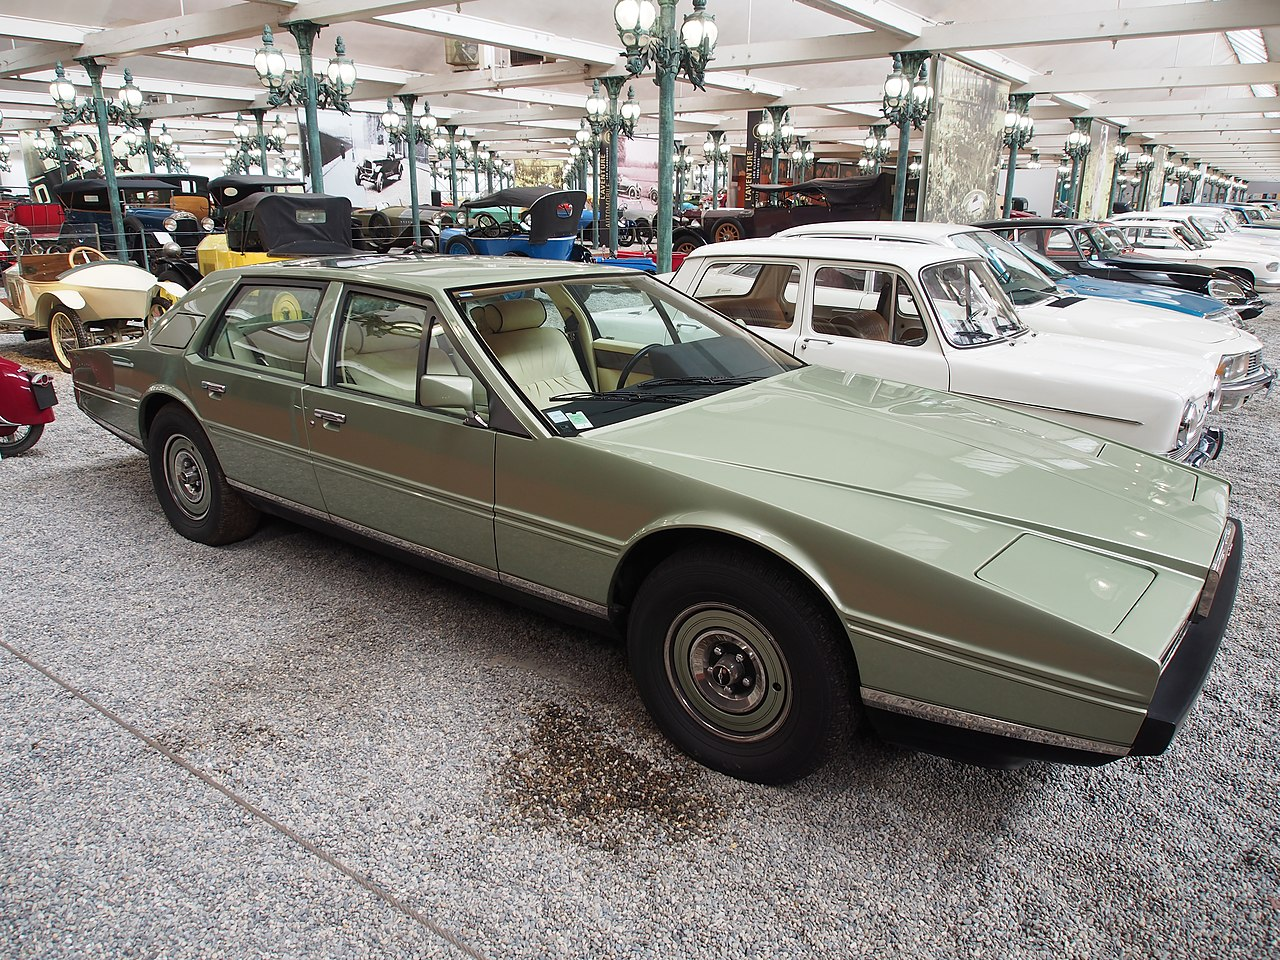 fichier 1982 aston martin lagonda series 2 v8 5340cm3 309hp 225kmh pic3 jpg wikip dia. Black Bedroom Furniture Sets. Home Design Ideas